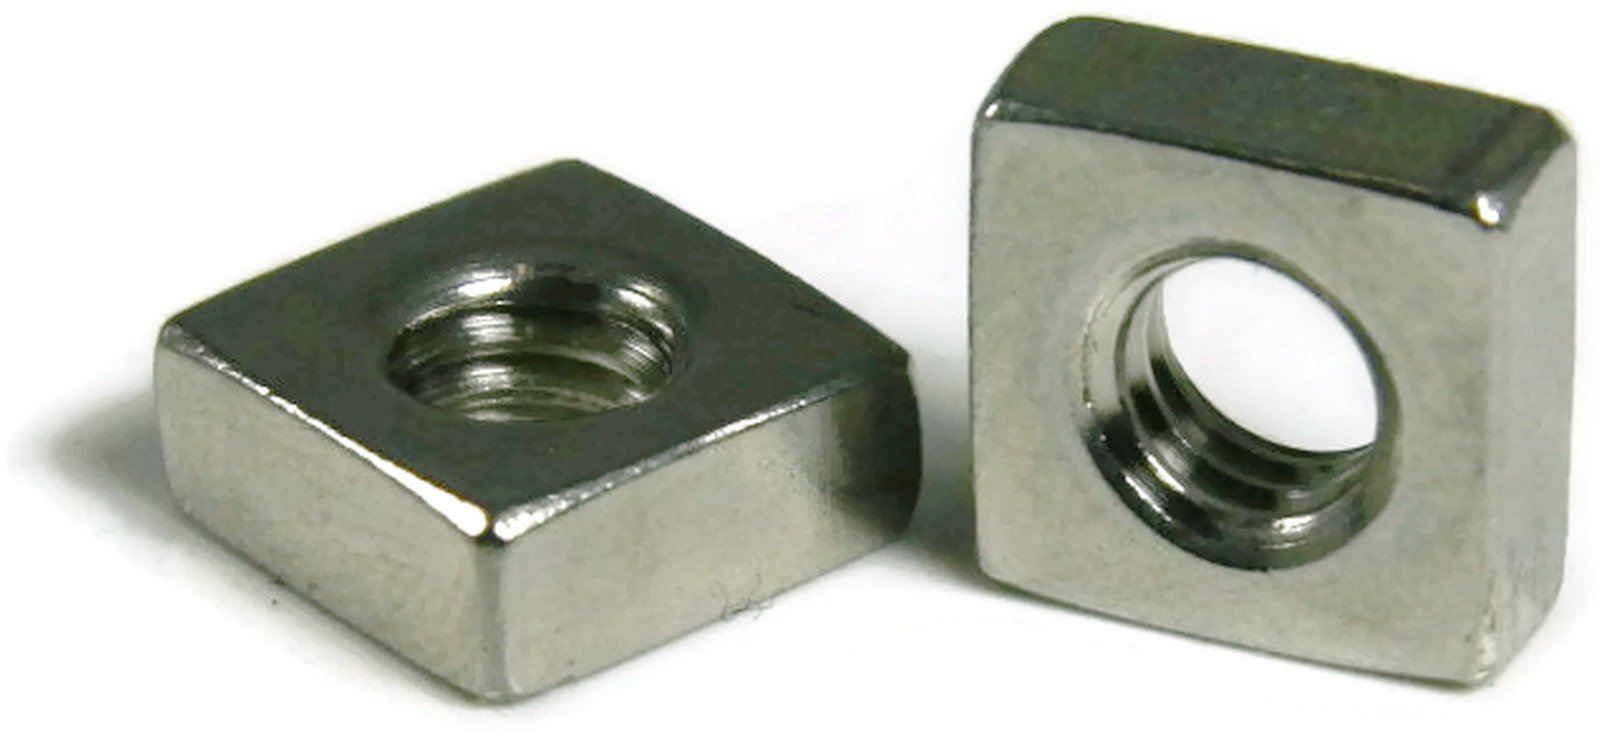 Square Nut 18-8 Stainless Steel - 3/8-16 Qty-25